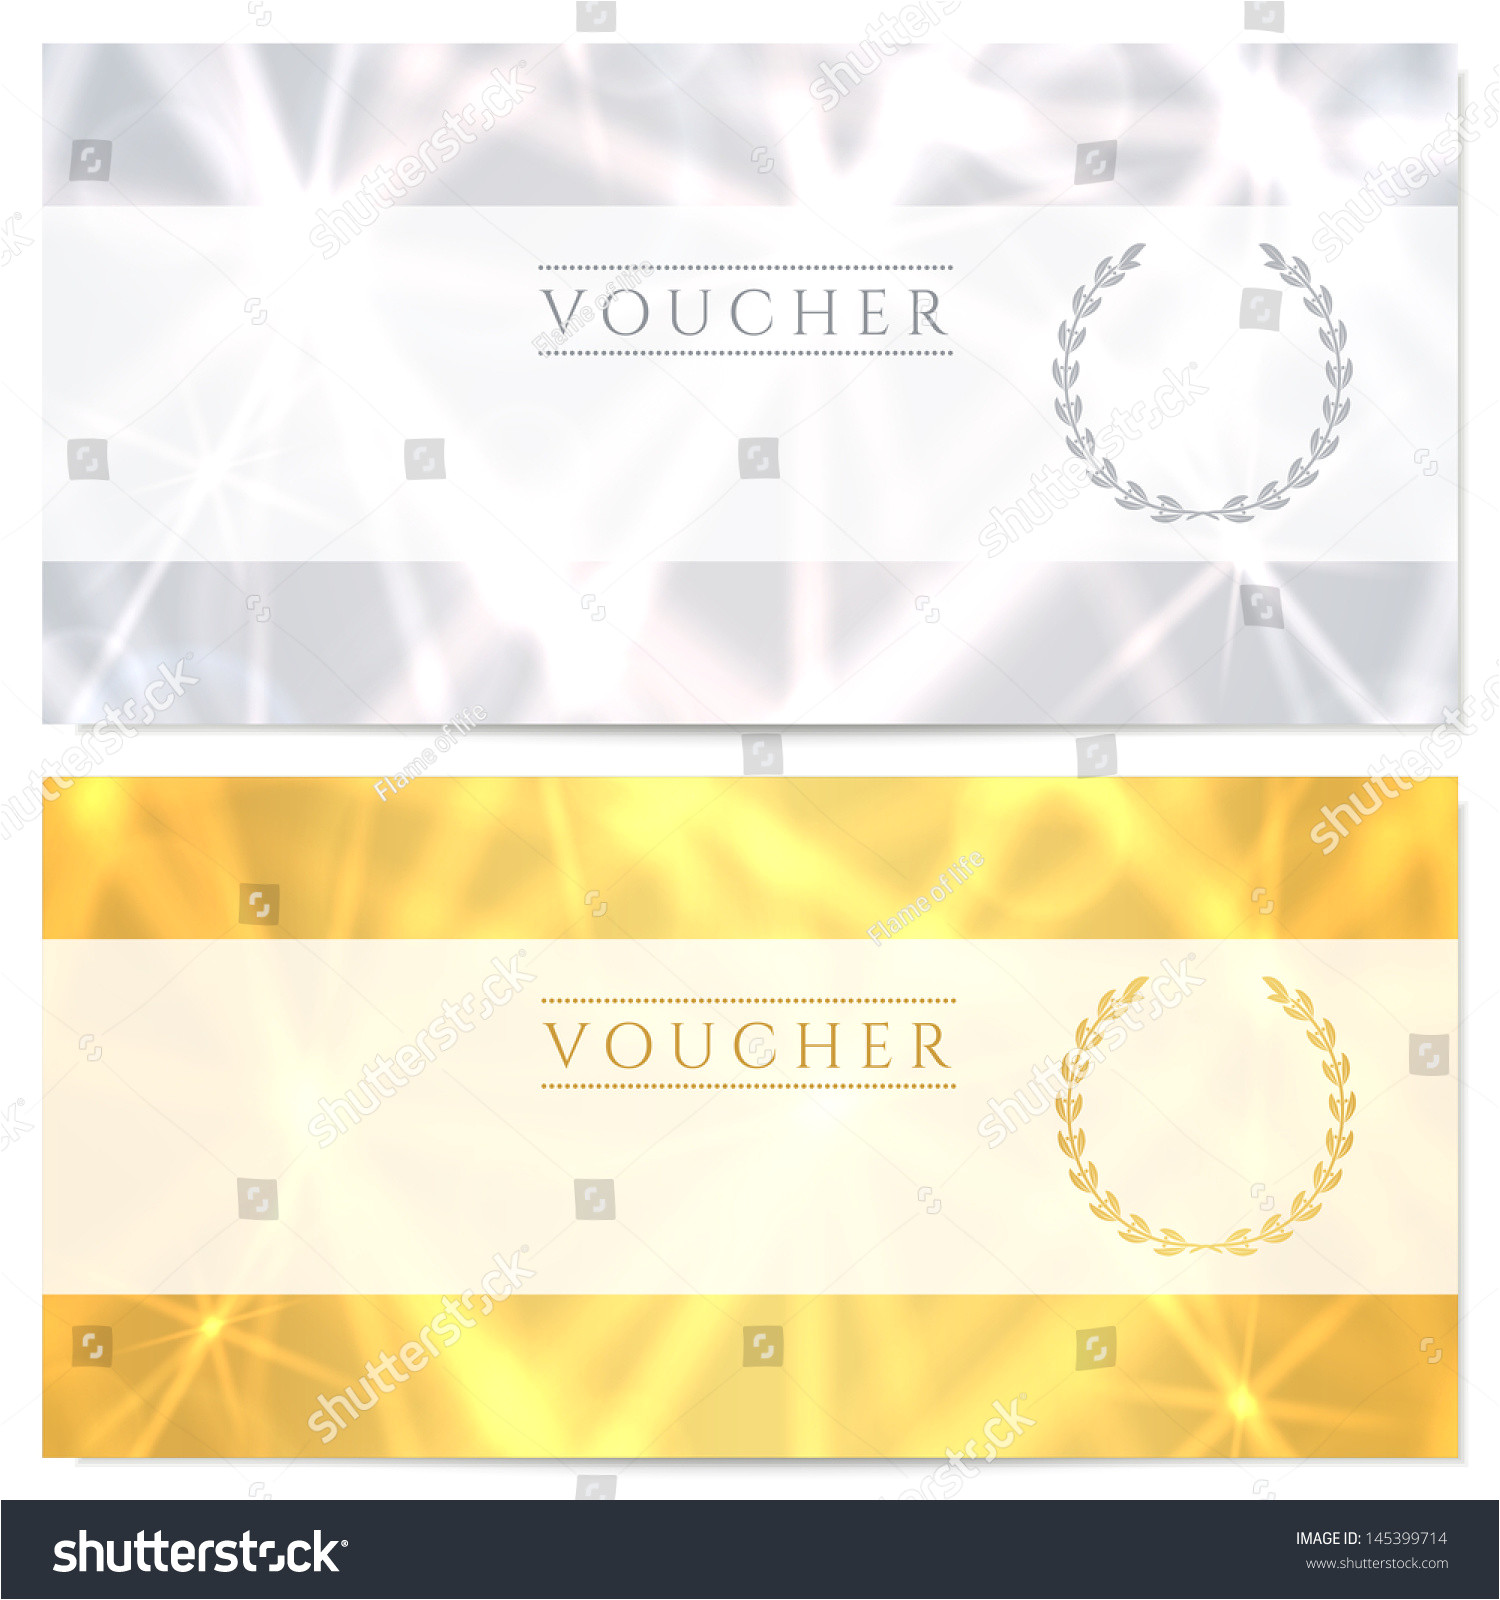 stock photo voucher gift certificate coupon template with pattern sparkling twinkling stars background